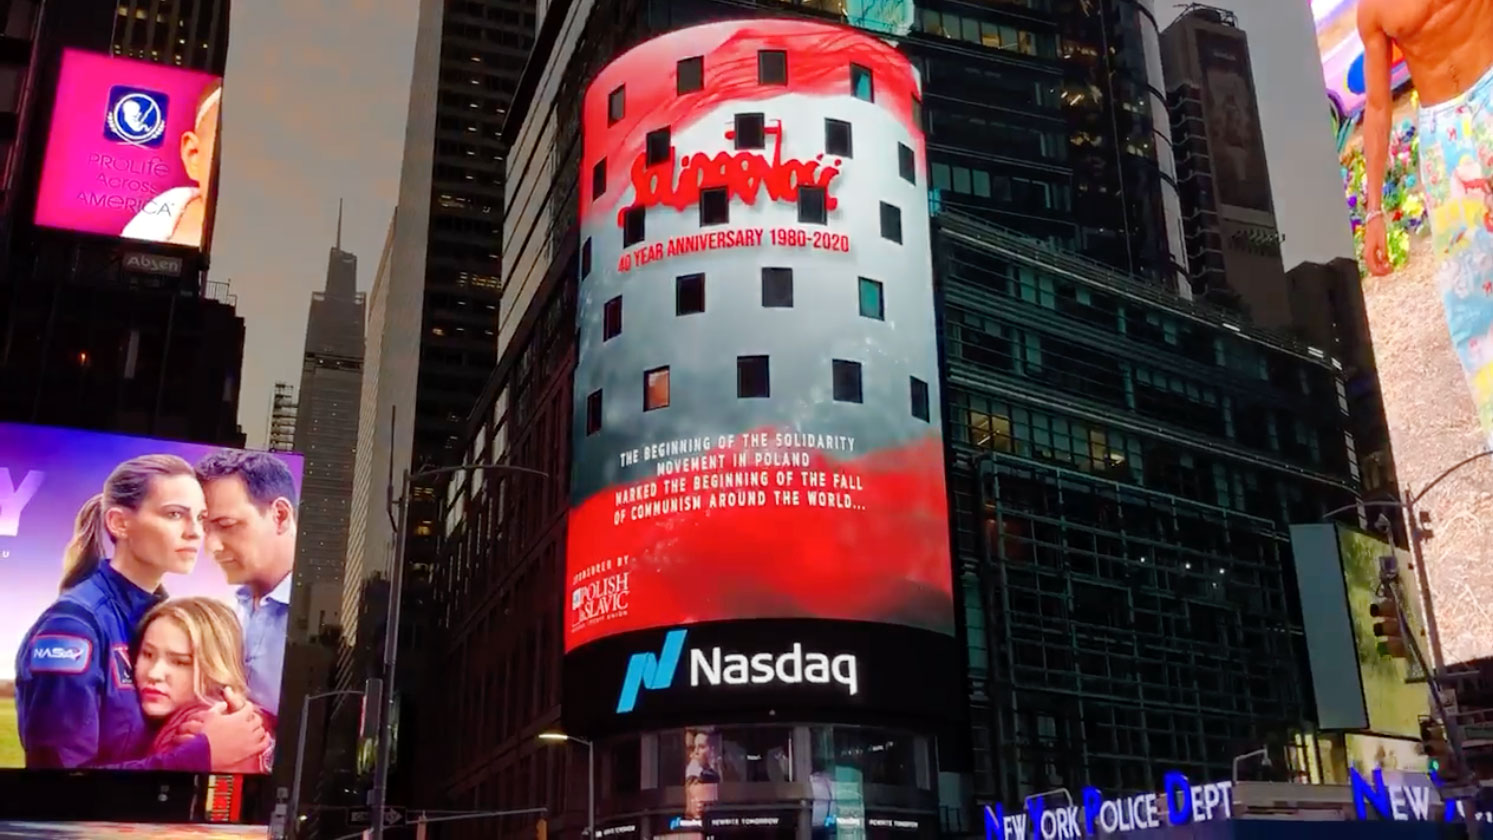 PSFCU Commemorates 40th Anniversary of the Solidarity Movement in Poland on Times Square, NYC